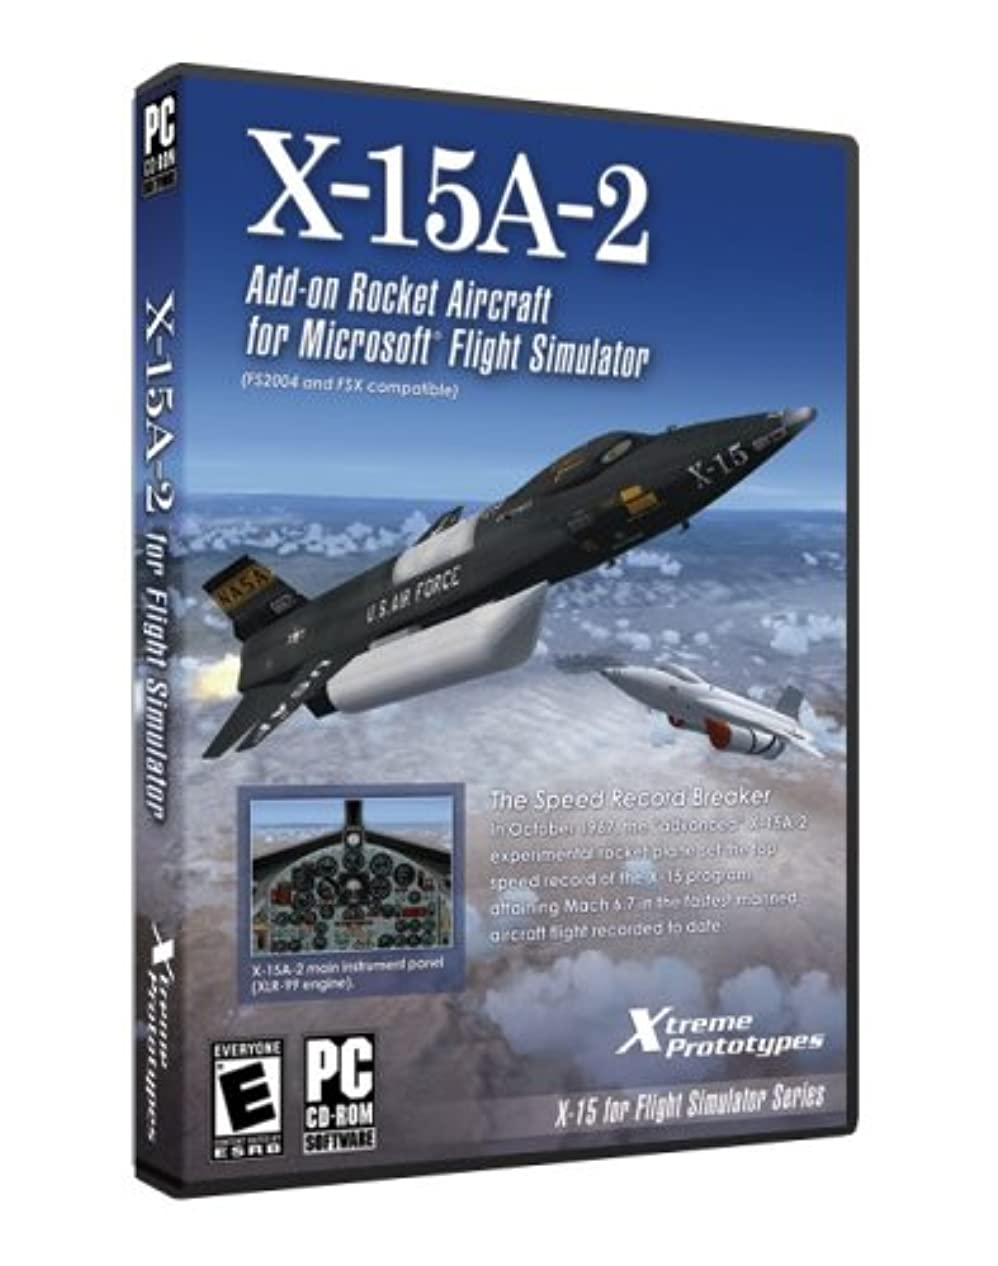 X-15A-2 Expansion Rocket Aircraft for FSX (輸入版)